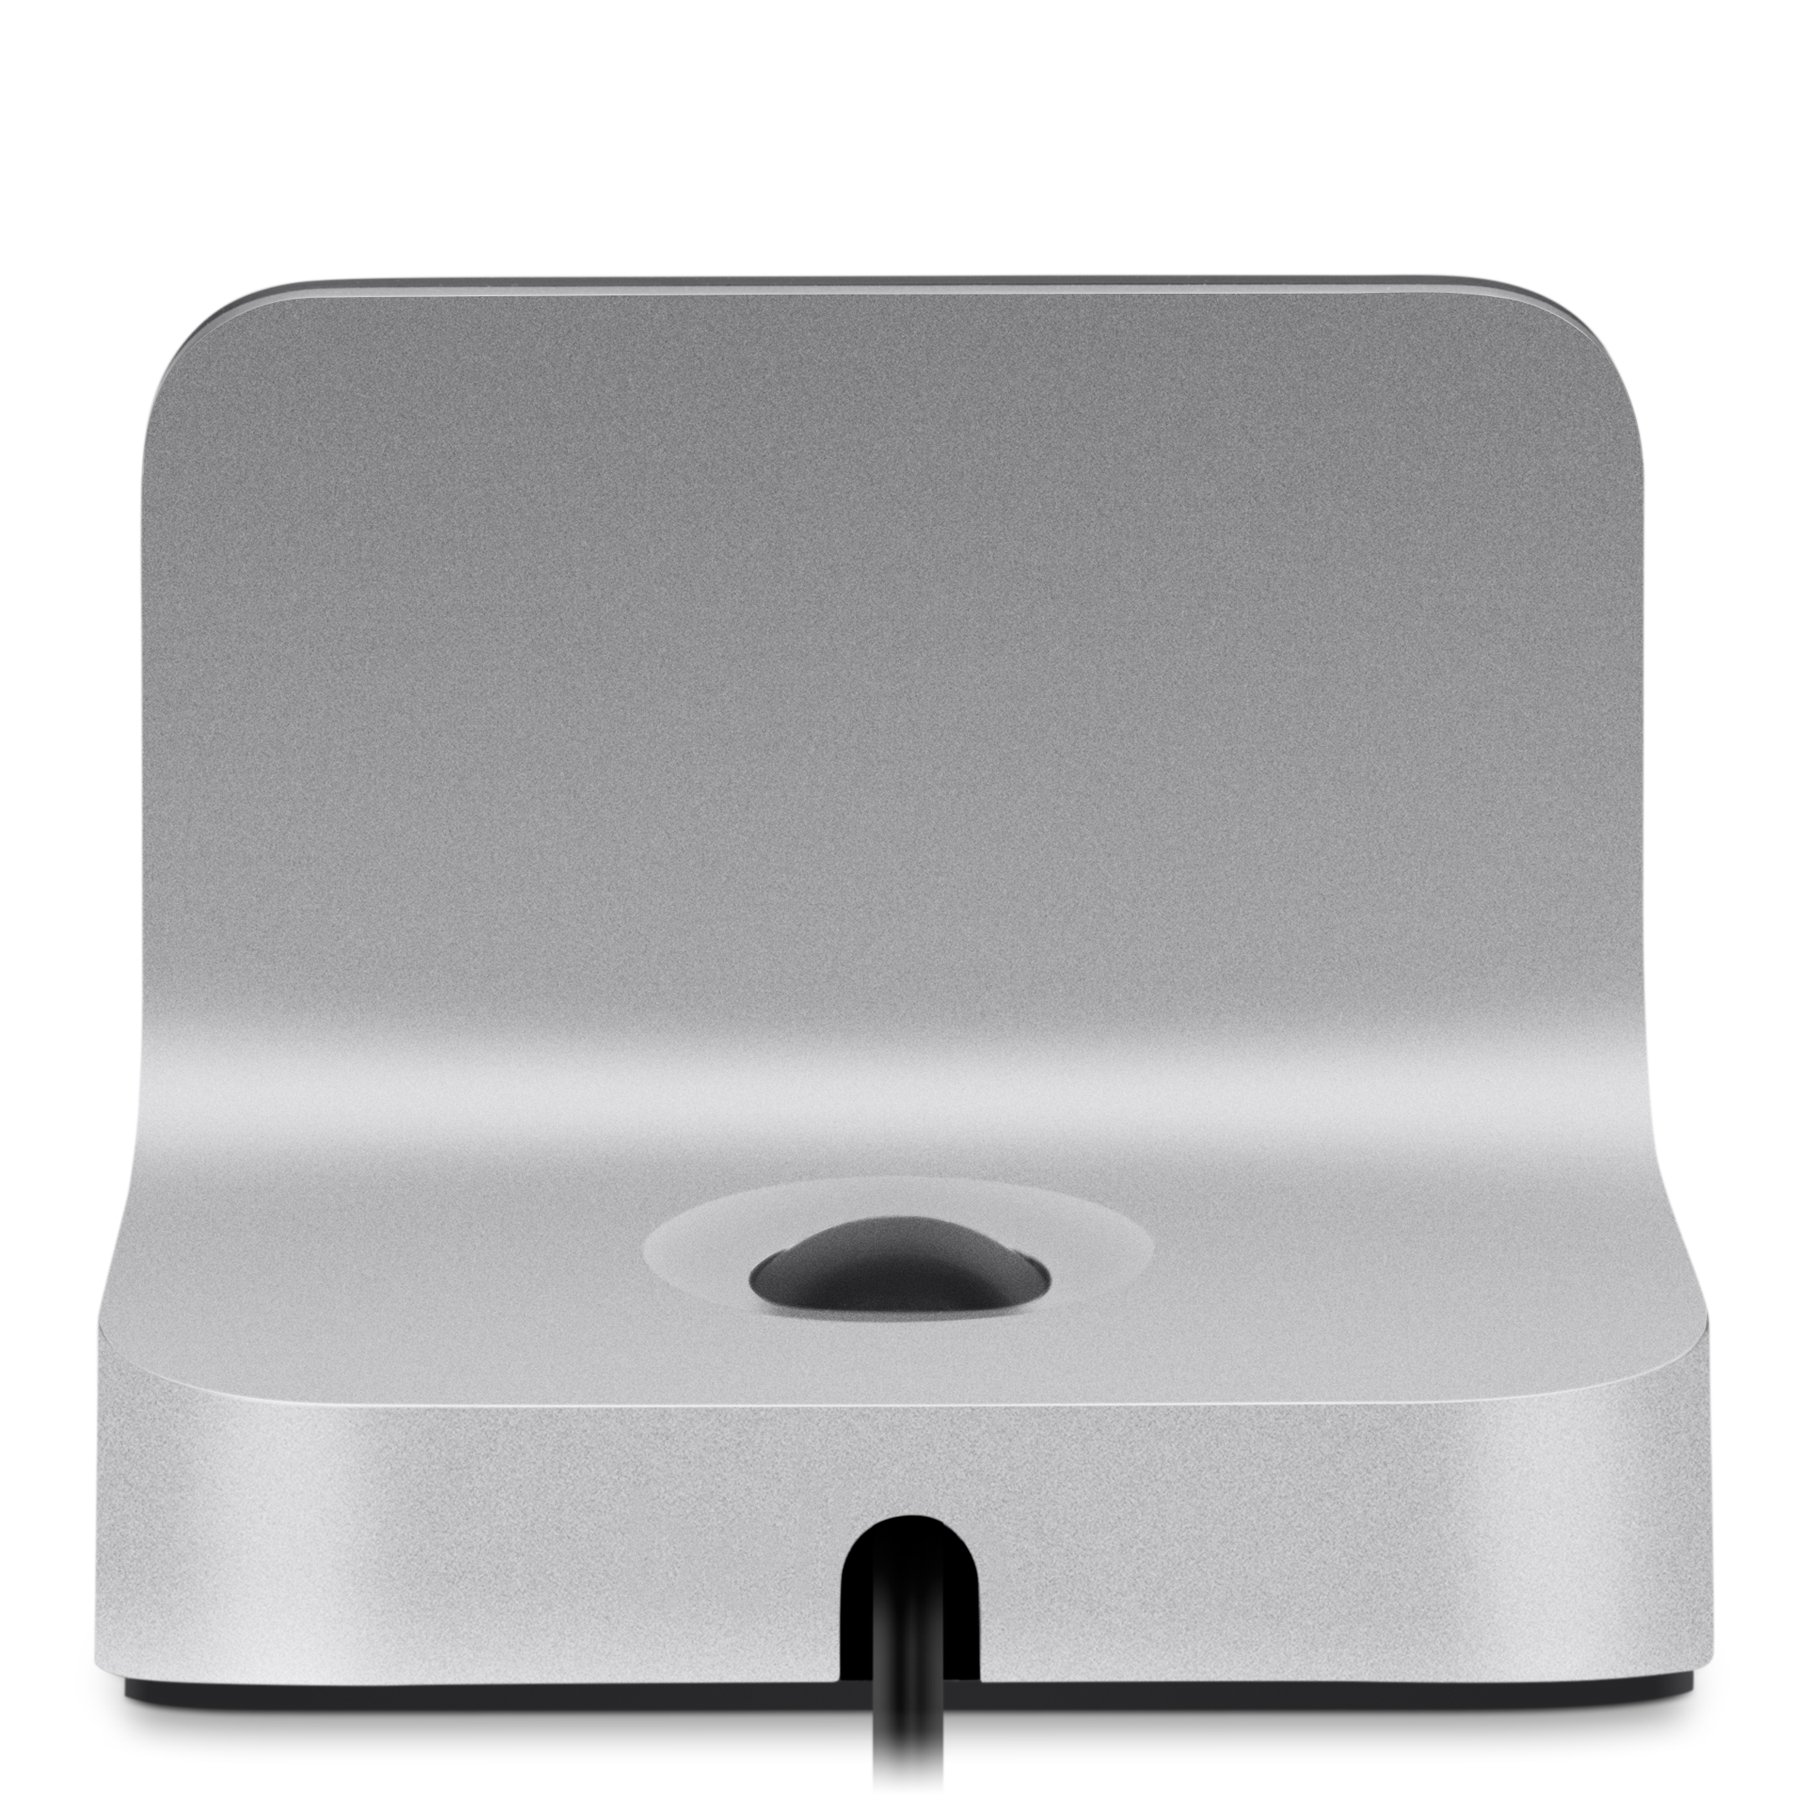 Belkin ChargeSync Lightning Express Dock with 4-Foot Charging Cable by Belkin (Image #7)